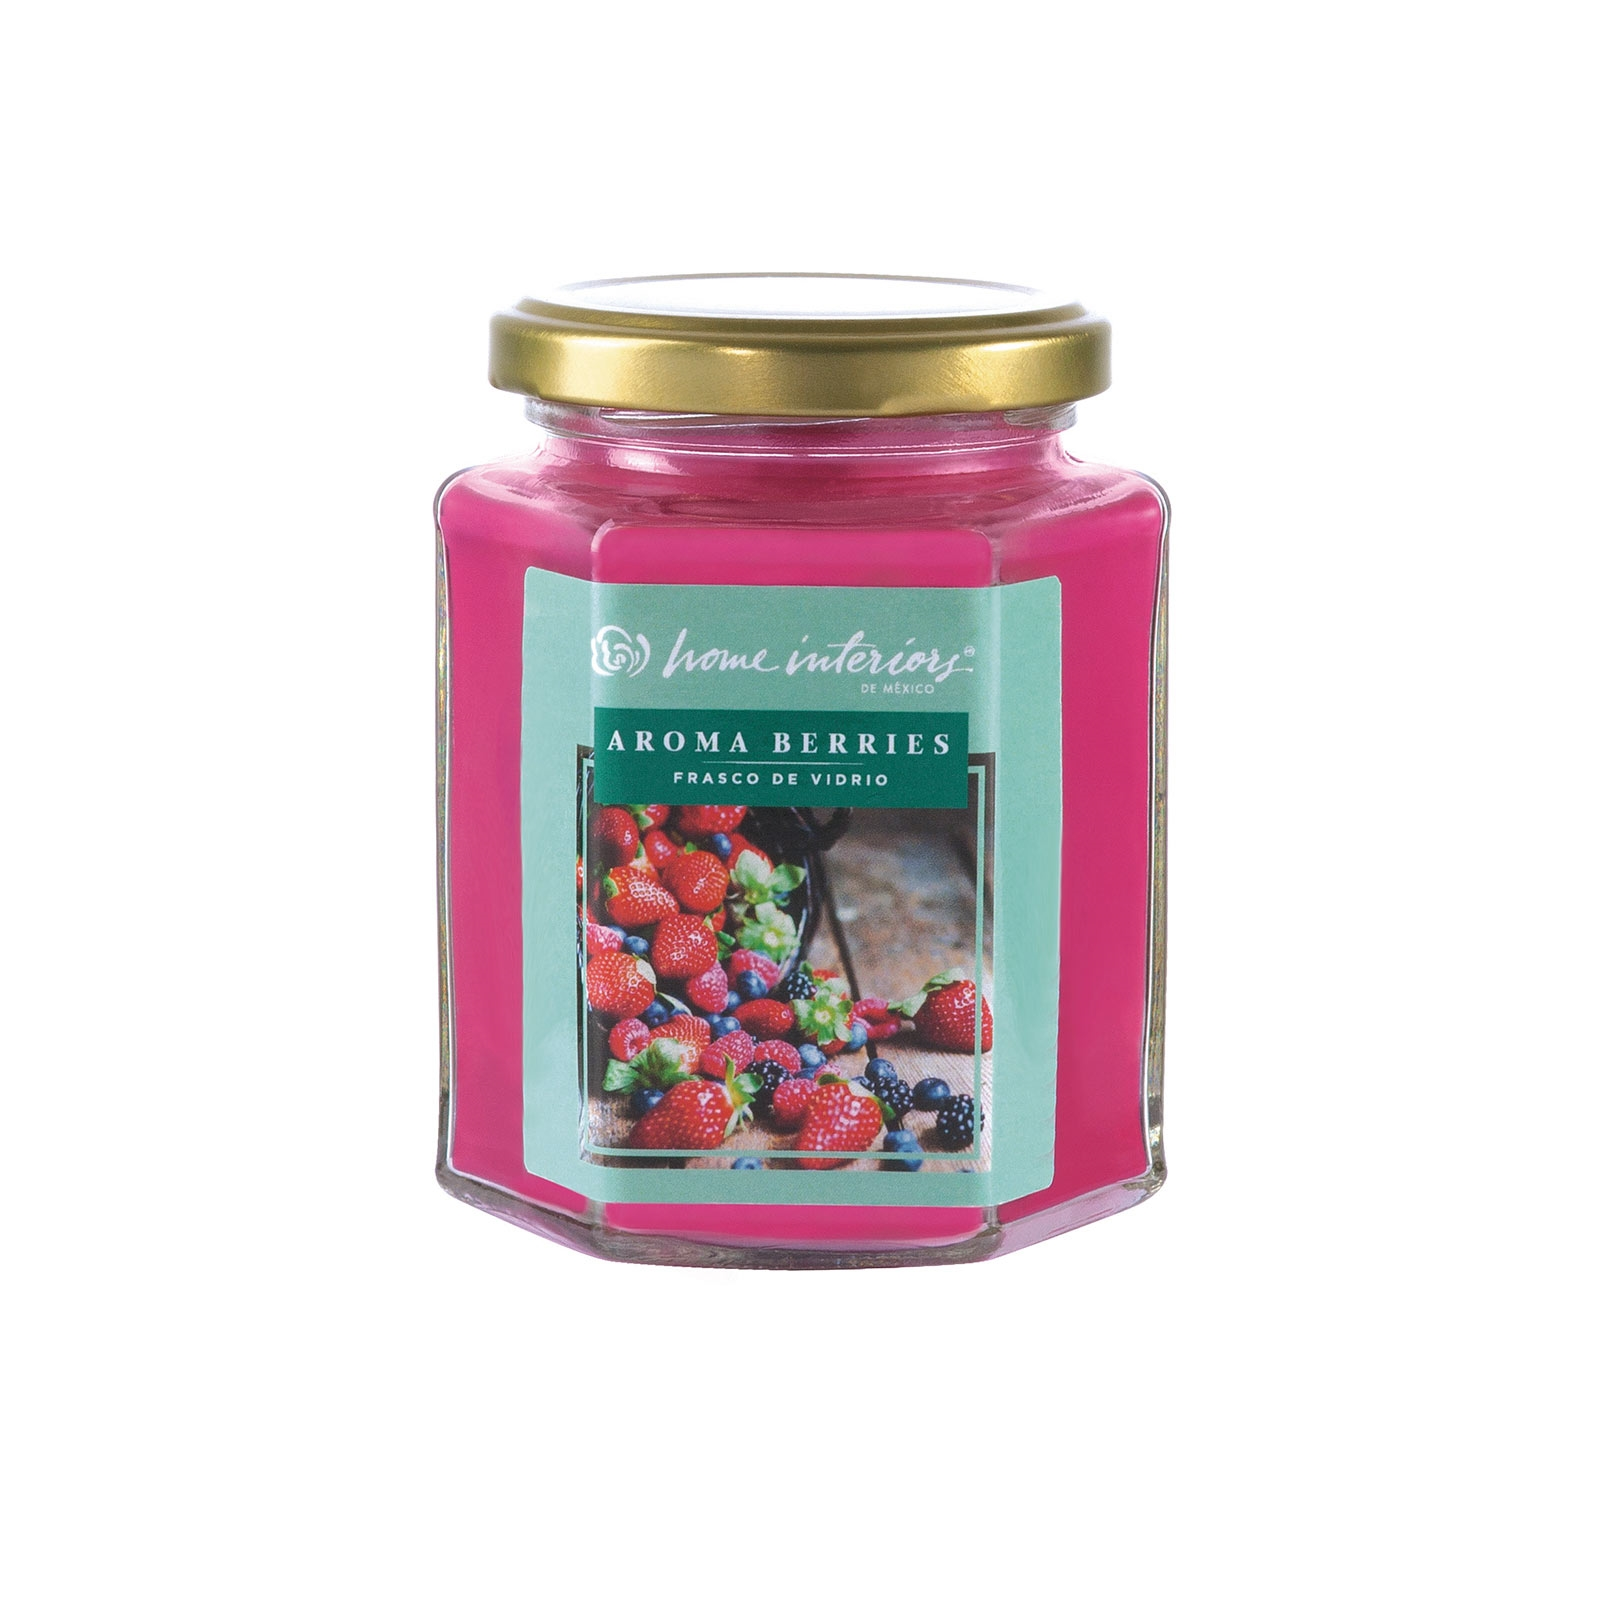 Superior 11503   Vela En Frasco De Vidrio  Aroma A Berries   Home Interiors De Mexico